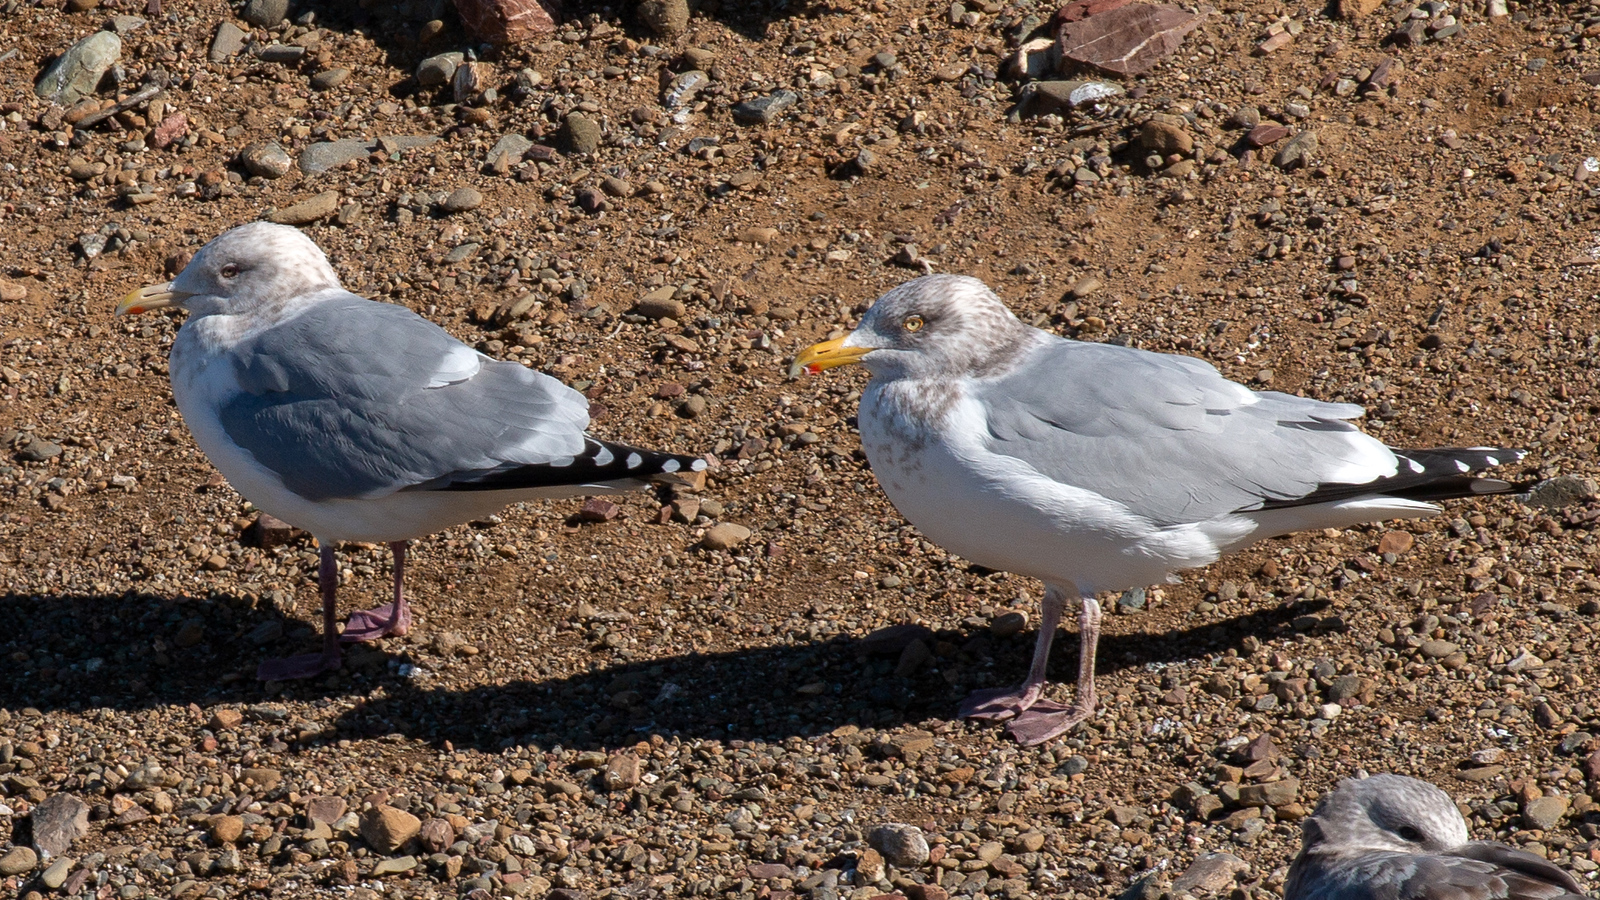 Iceland Gull and Herring Gull - Adults